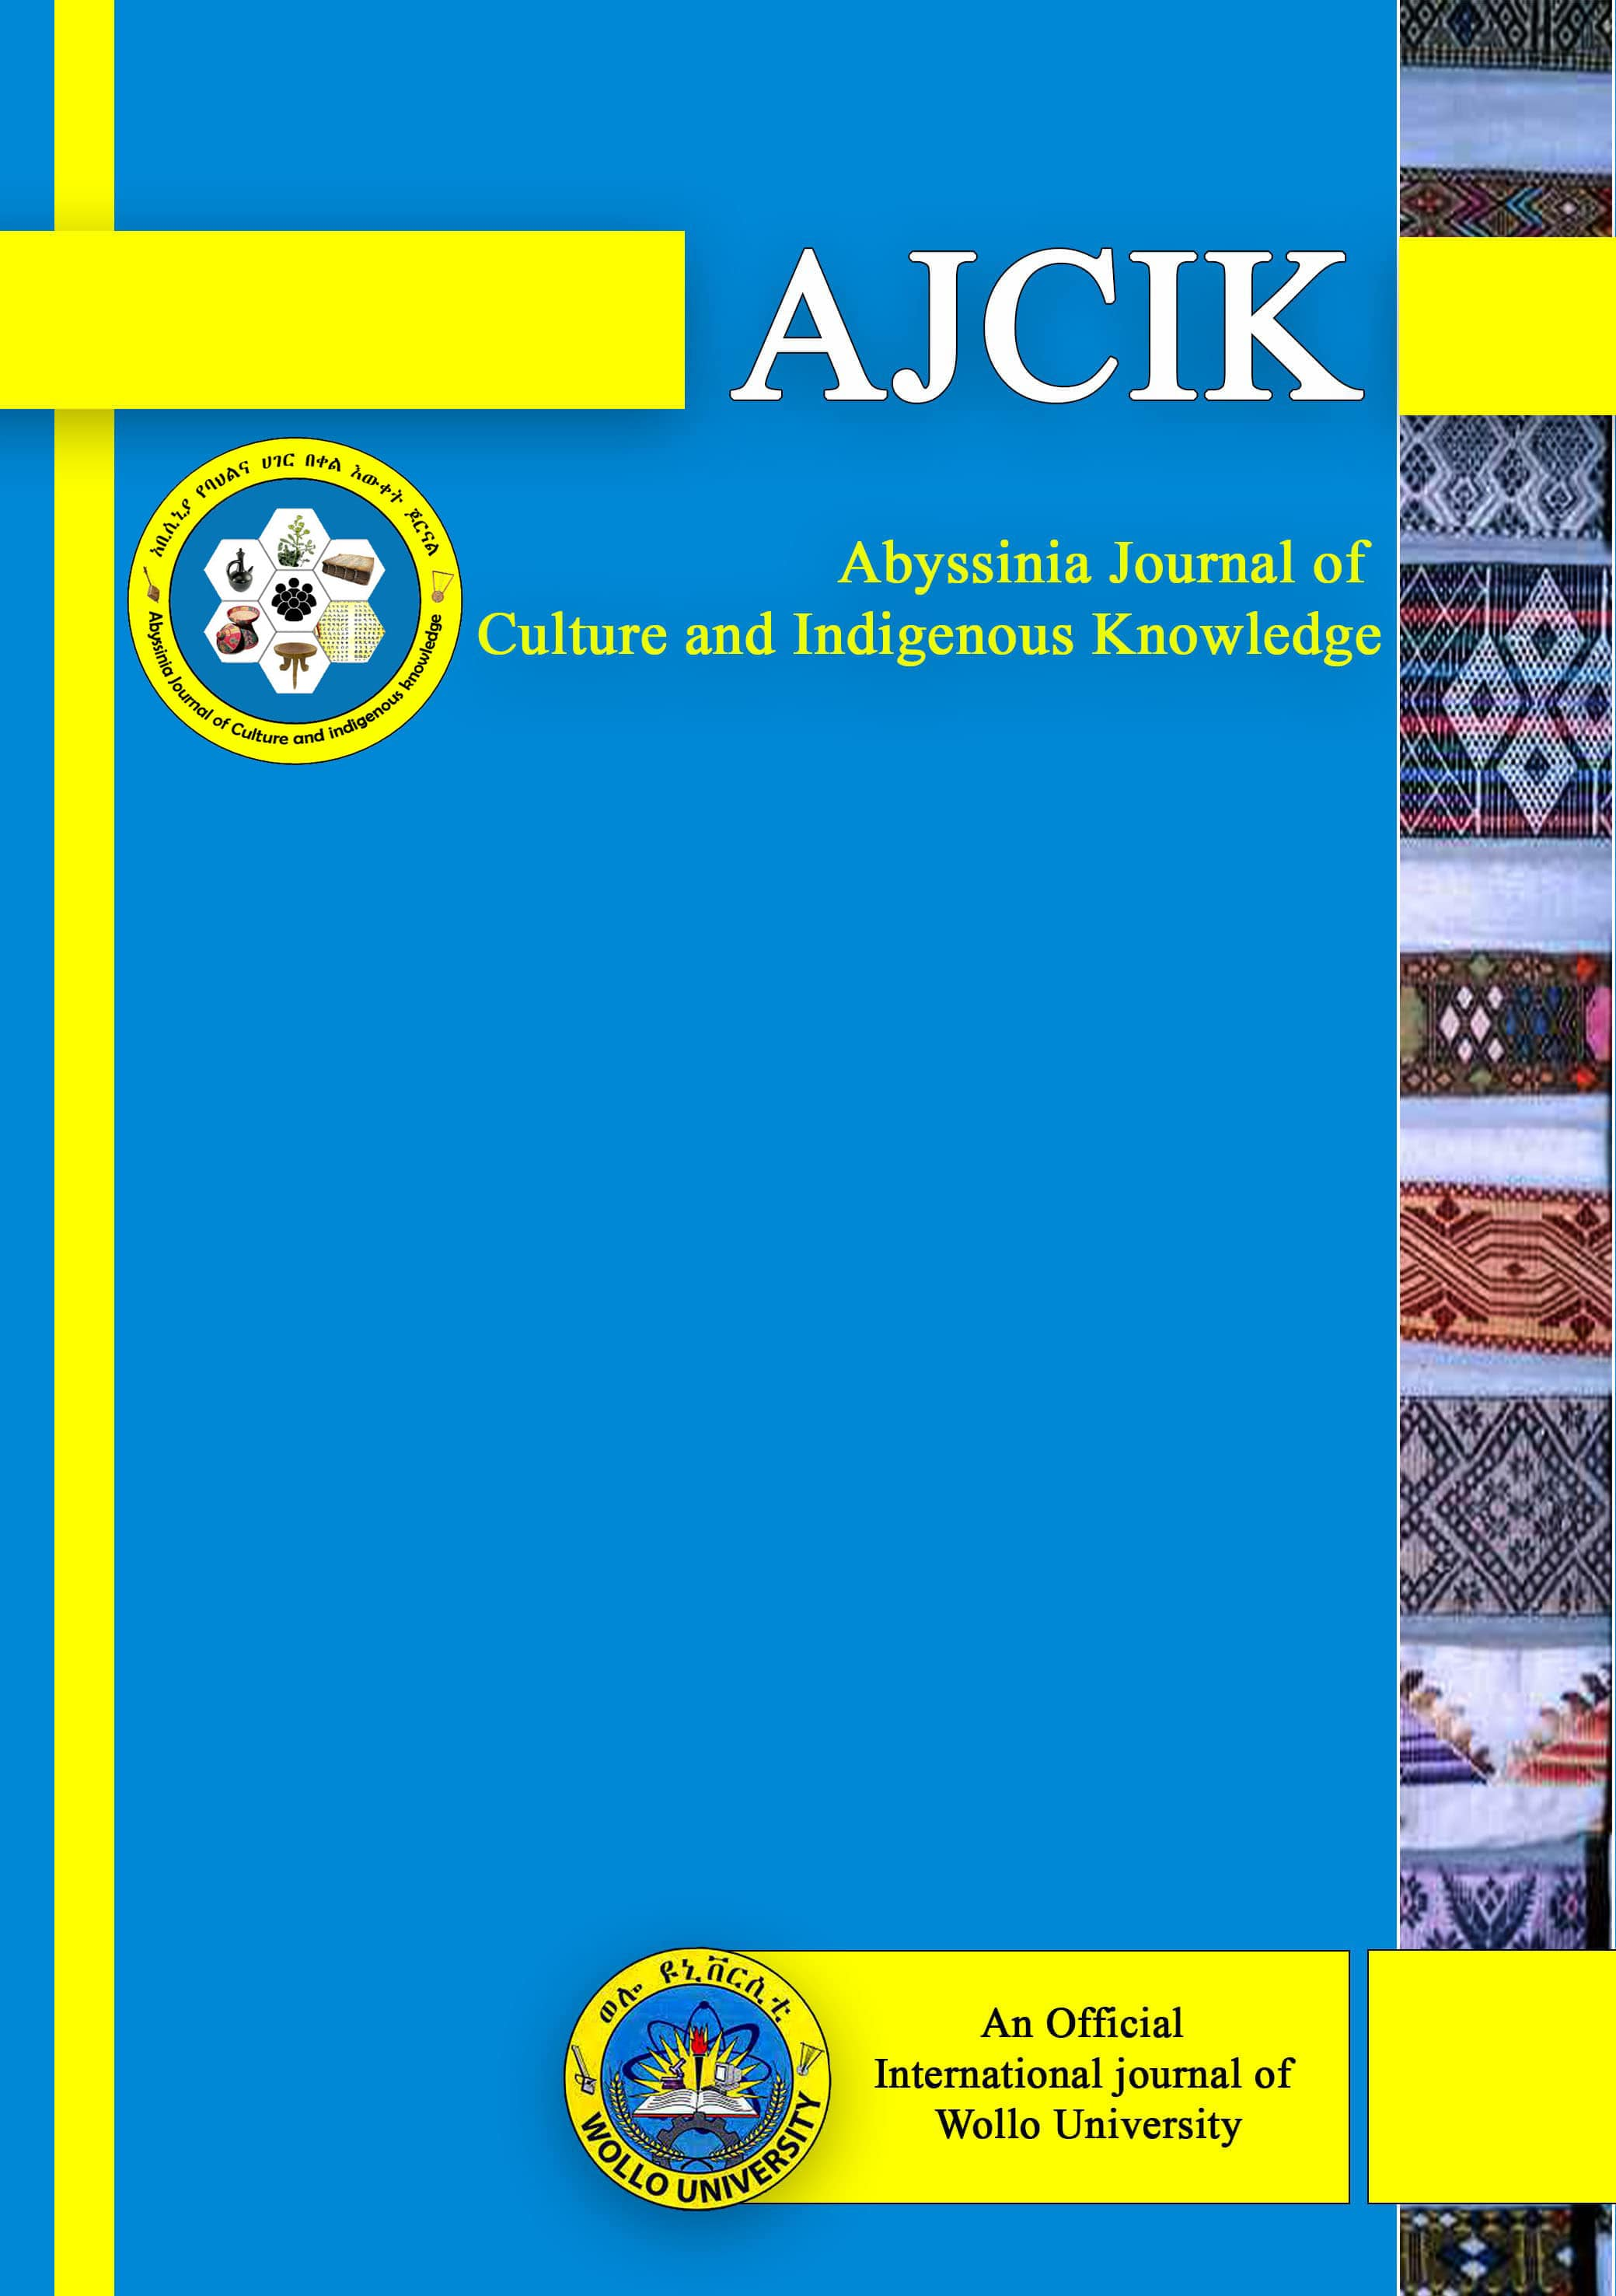 The Abyssinia Journal of Culture and Indigenous Knowledge (AJCIK)